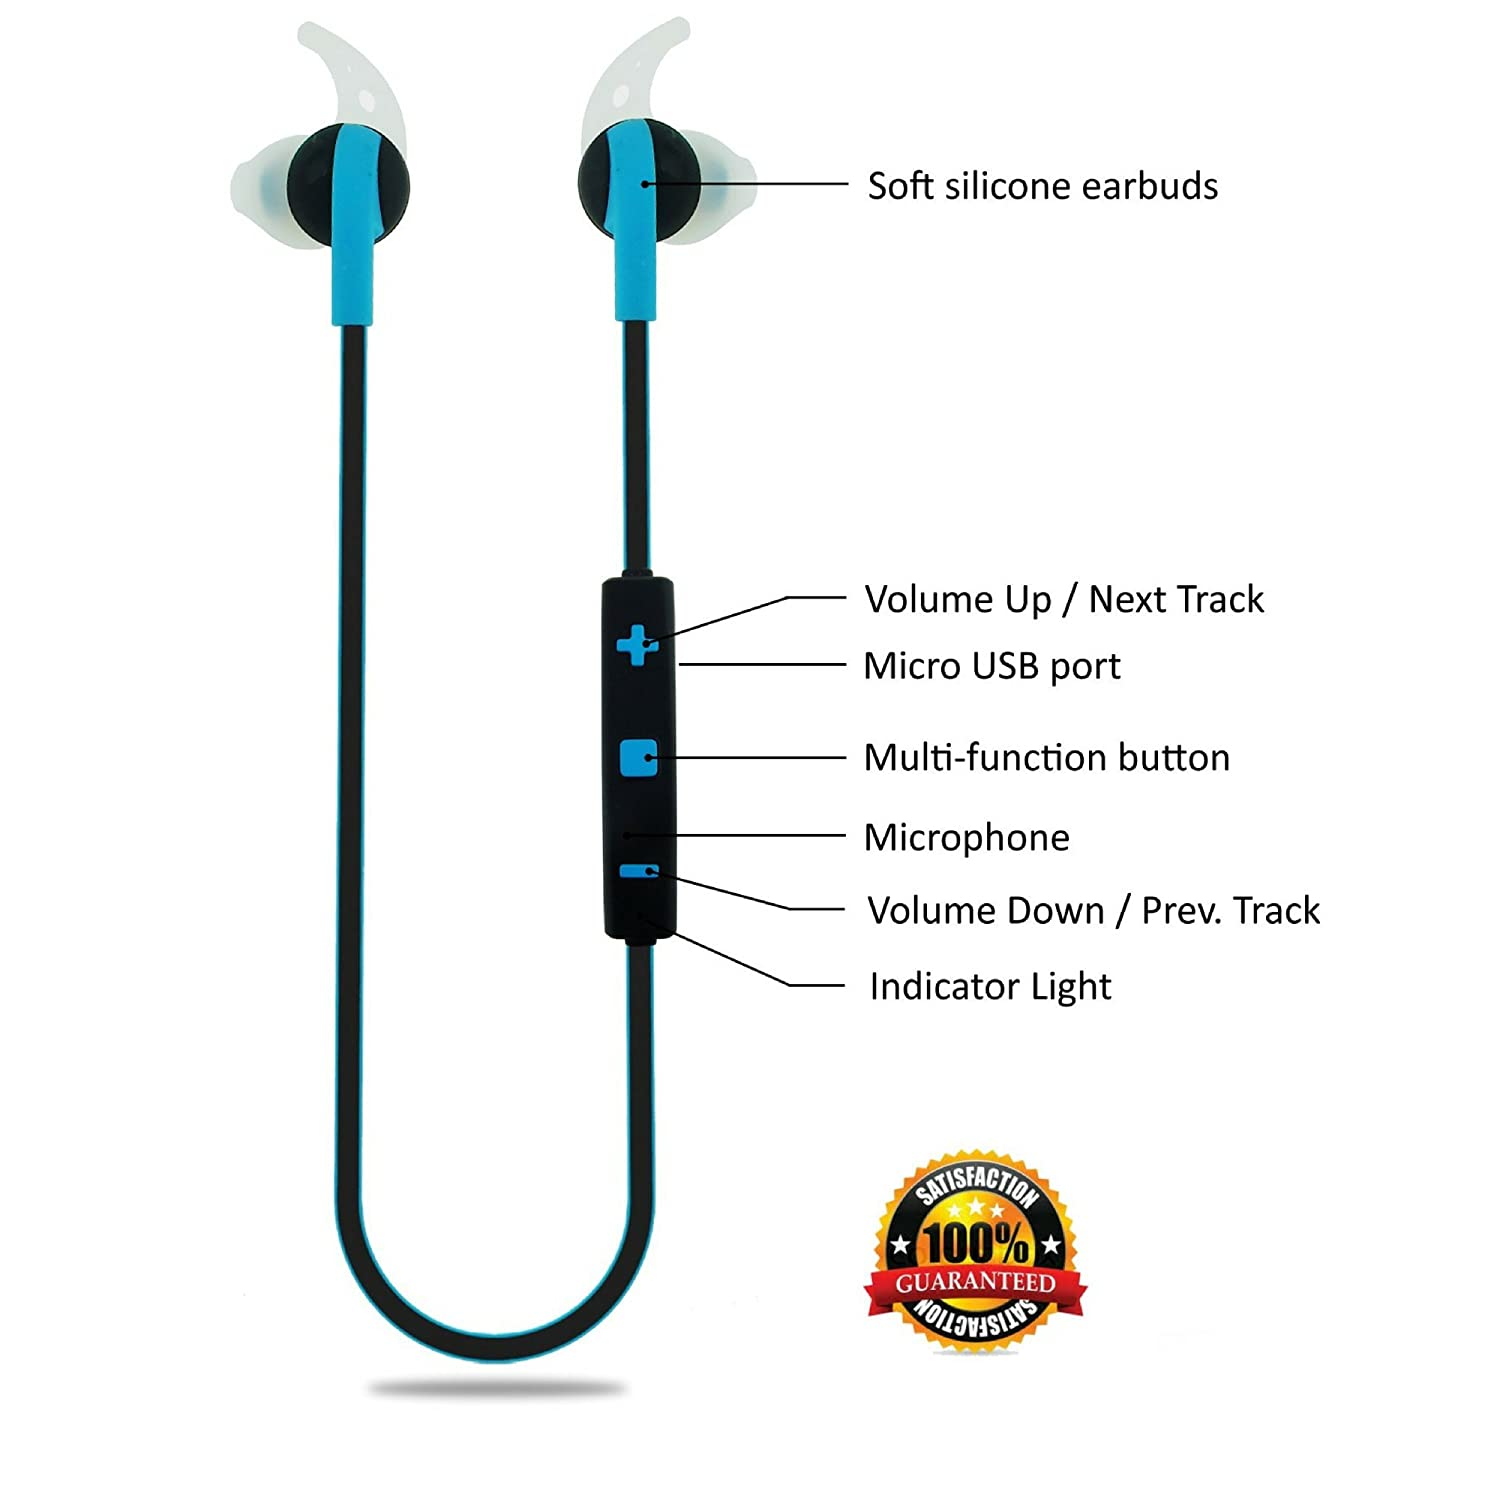 Wireless In-Ear Headphones Sweatproof Earbuds with Microphone for Phone Calls – Best Headset Earphones for Running Exercise Sport Gym on iPhone 6 6s Plus 5C 5S Android Samsung Galaxy S6 S5